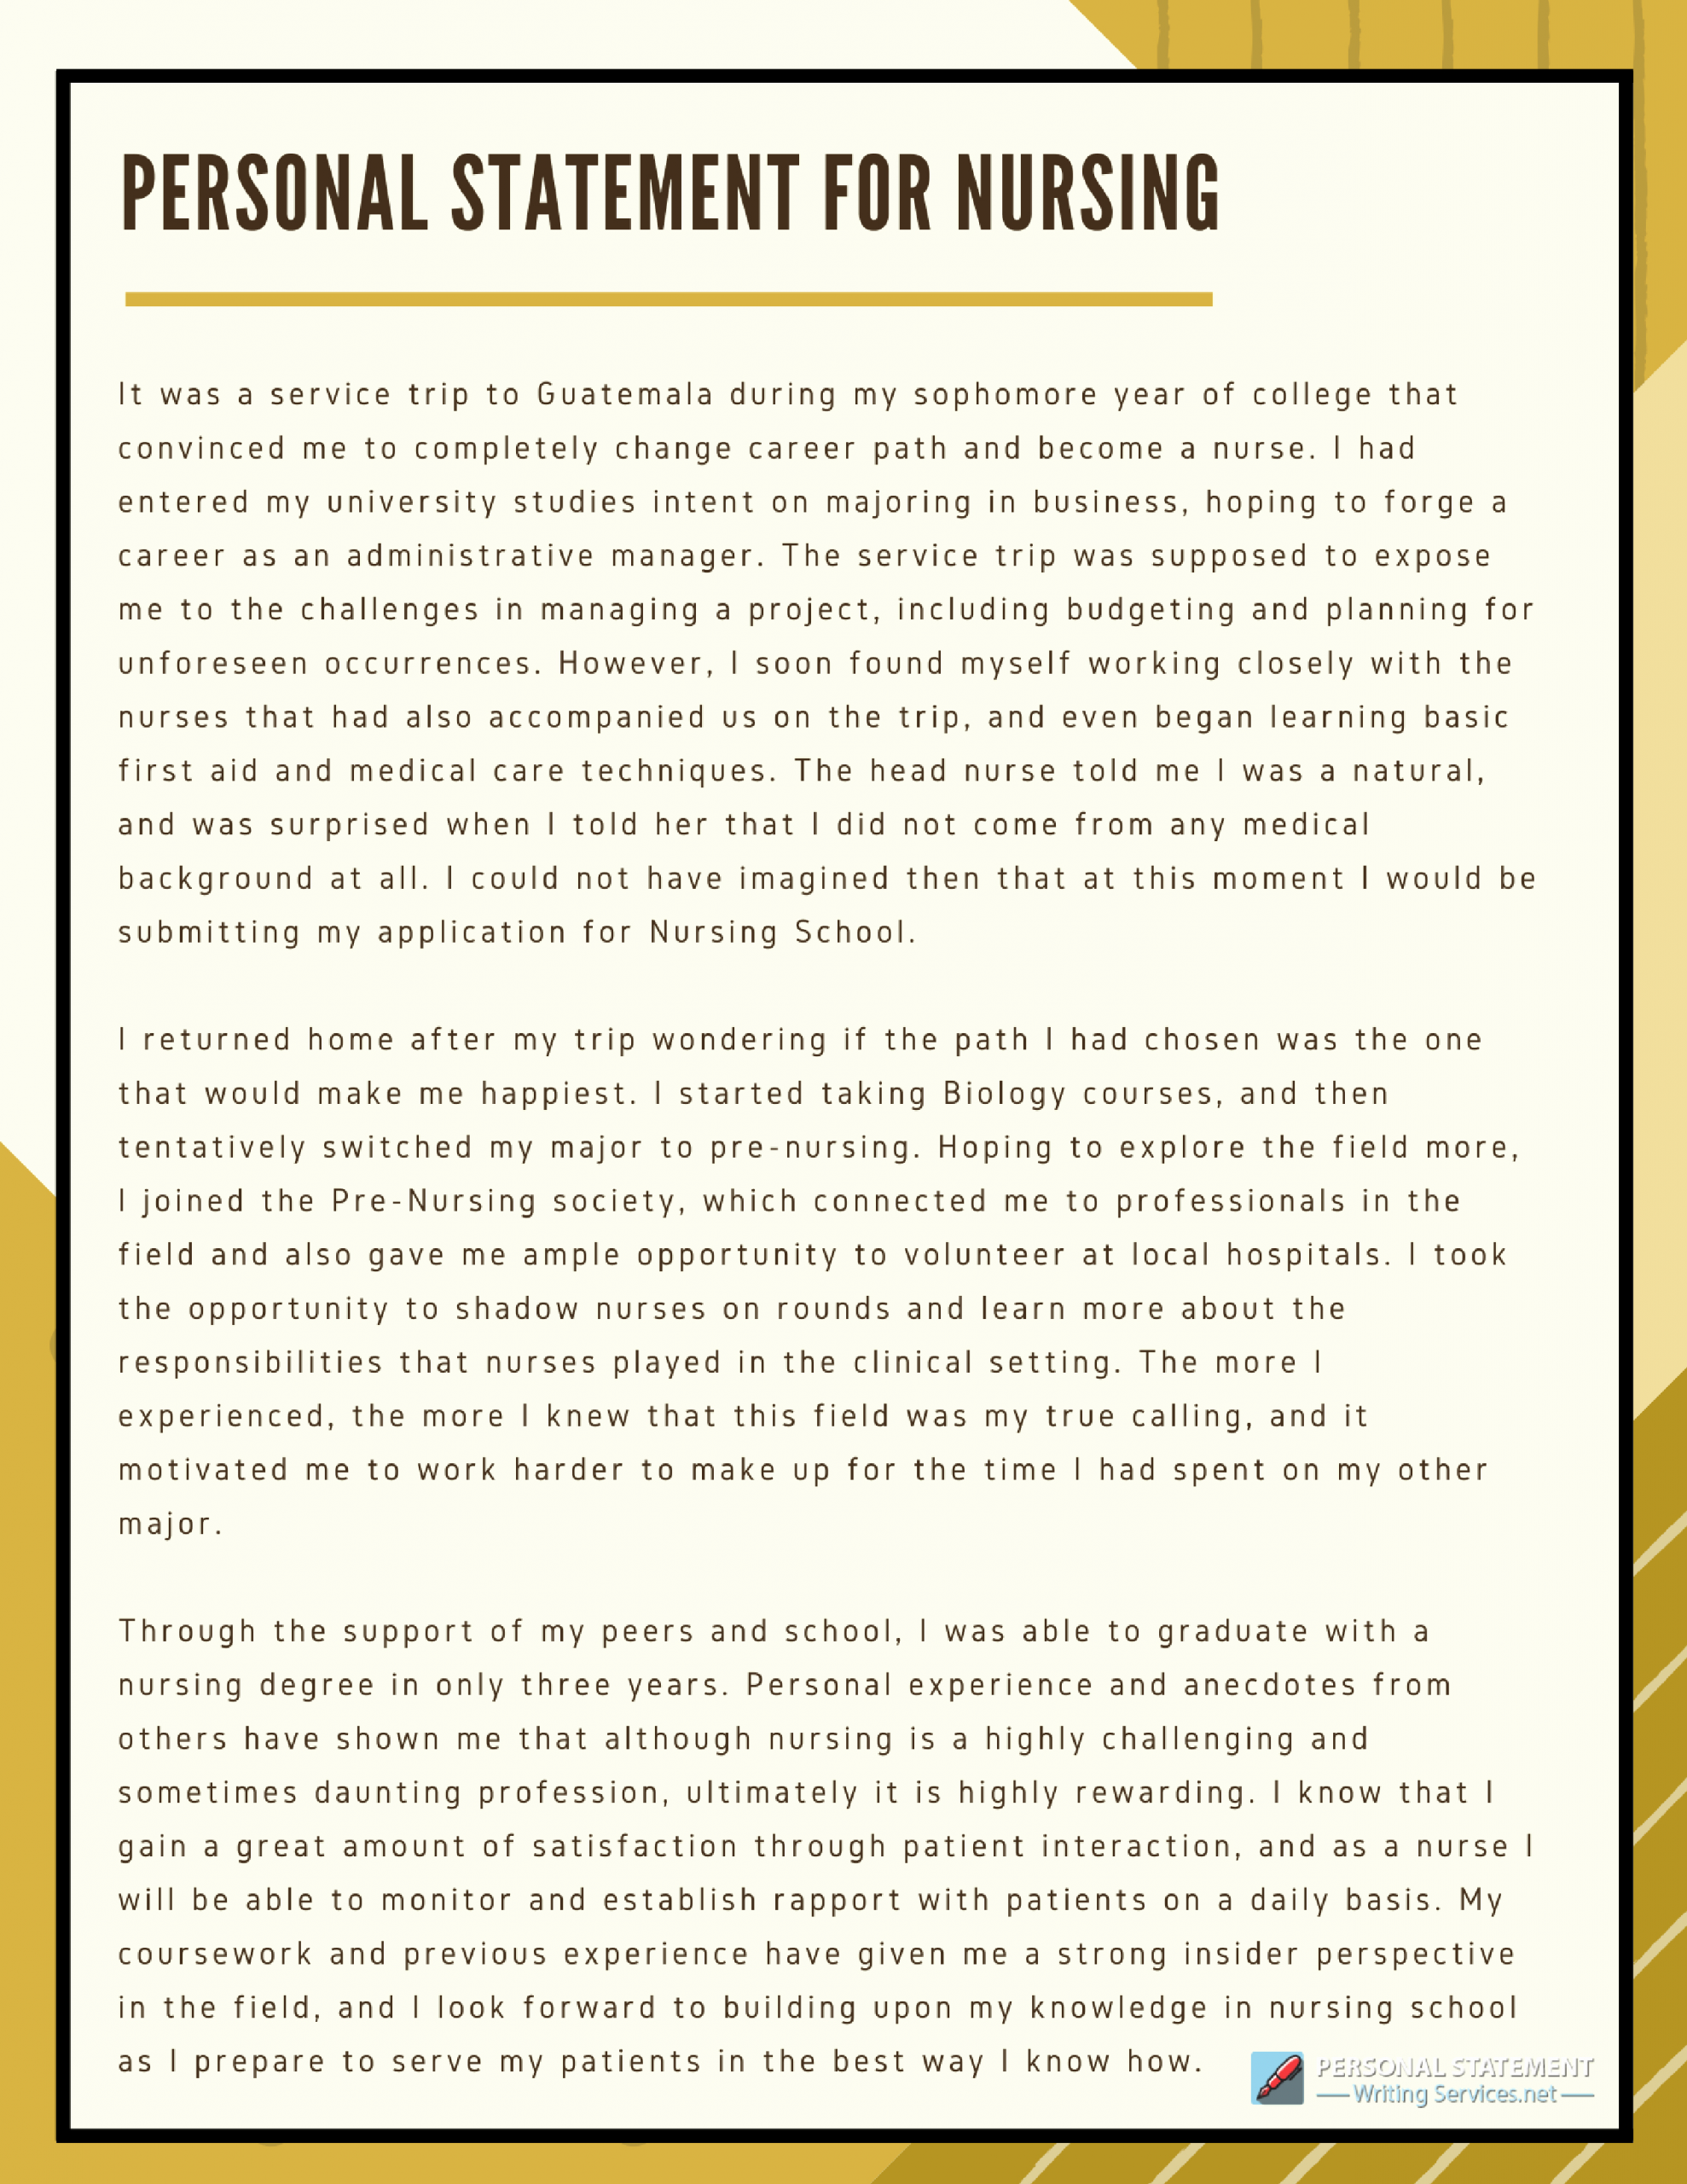 Personal Statement for Nursing School Awesome Best Personal Statement Nursing School